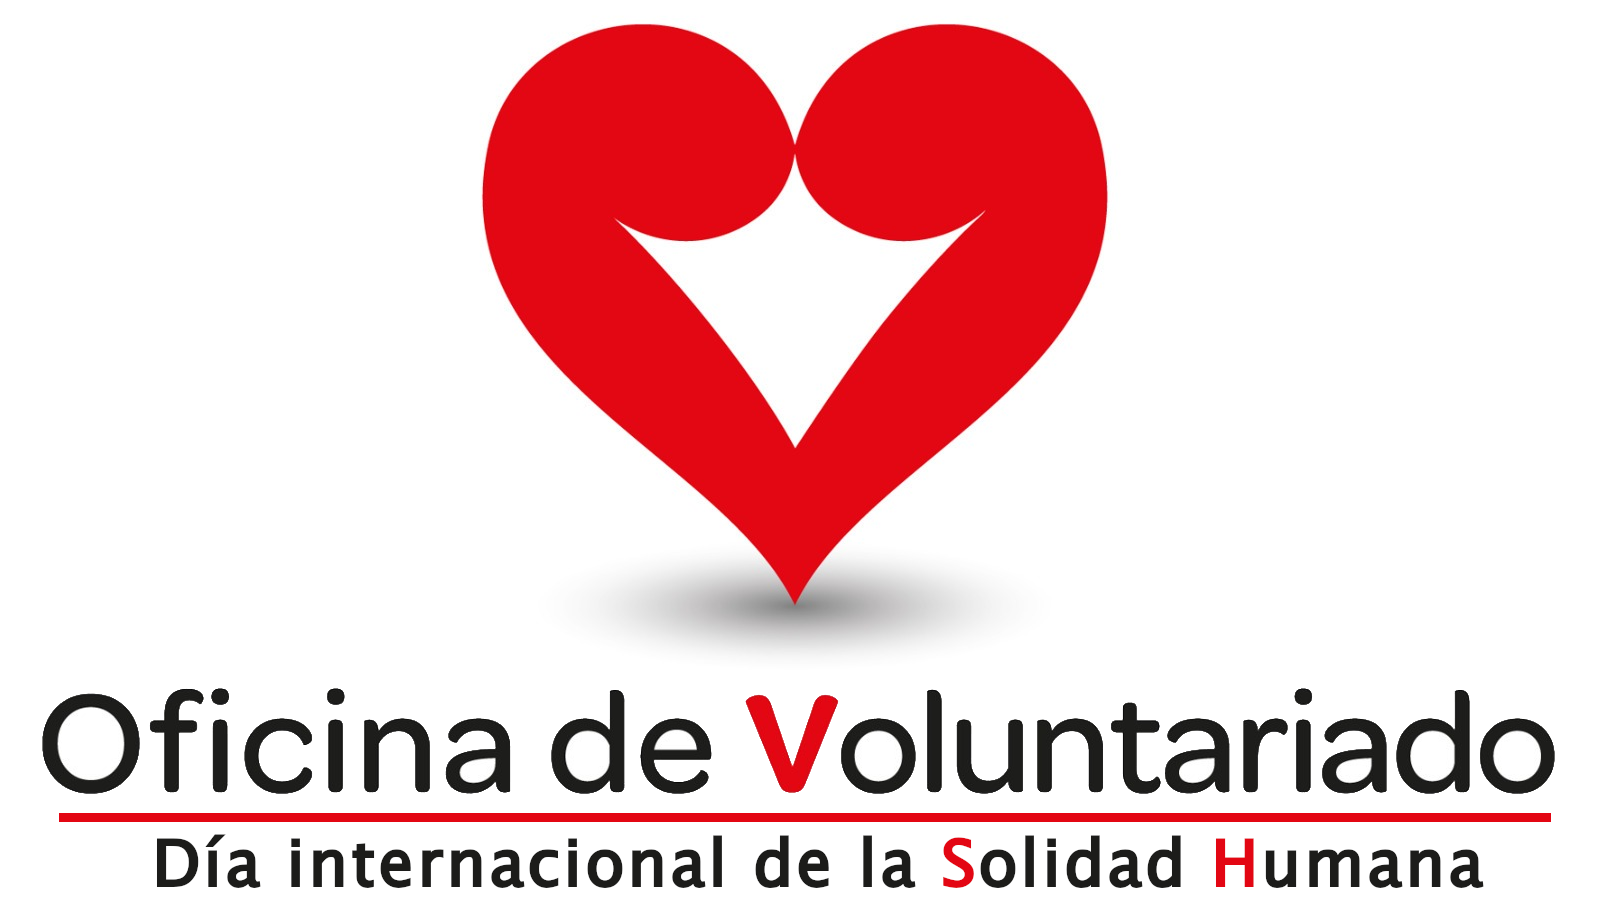 Oficina do Voluntariado